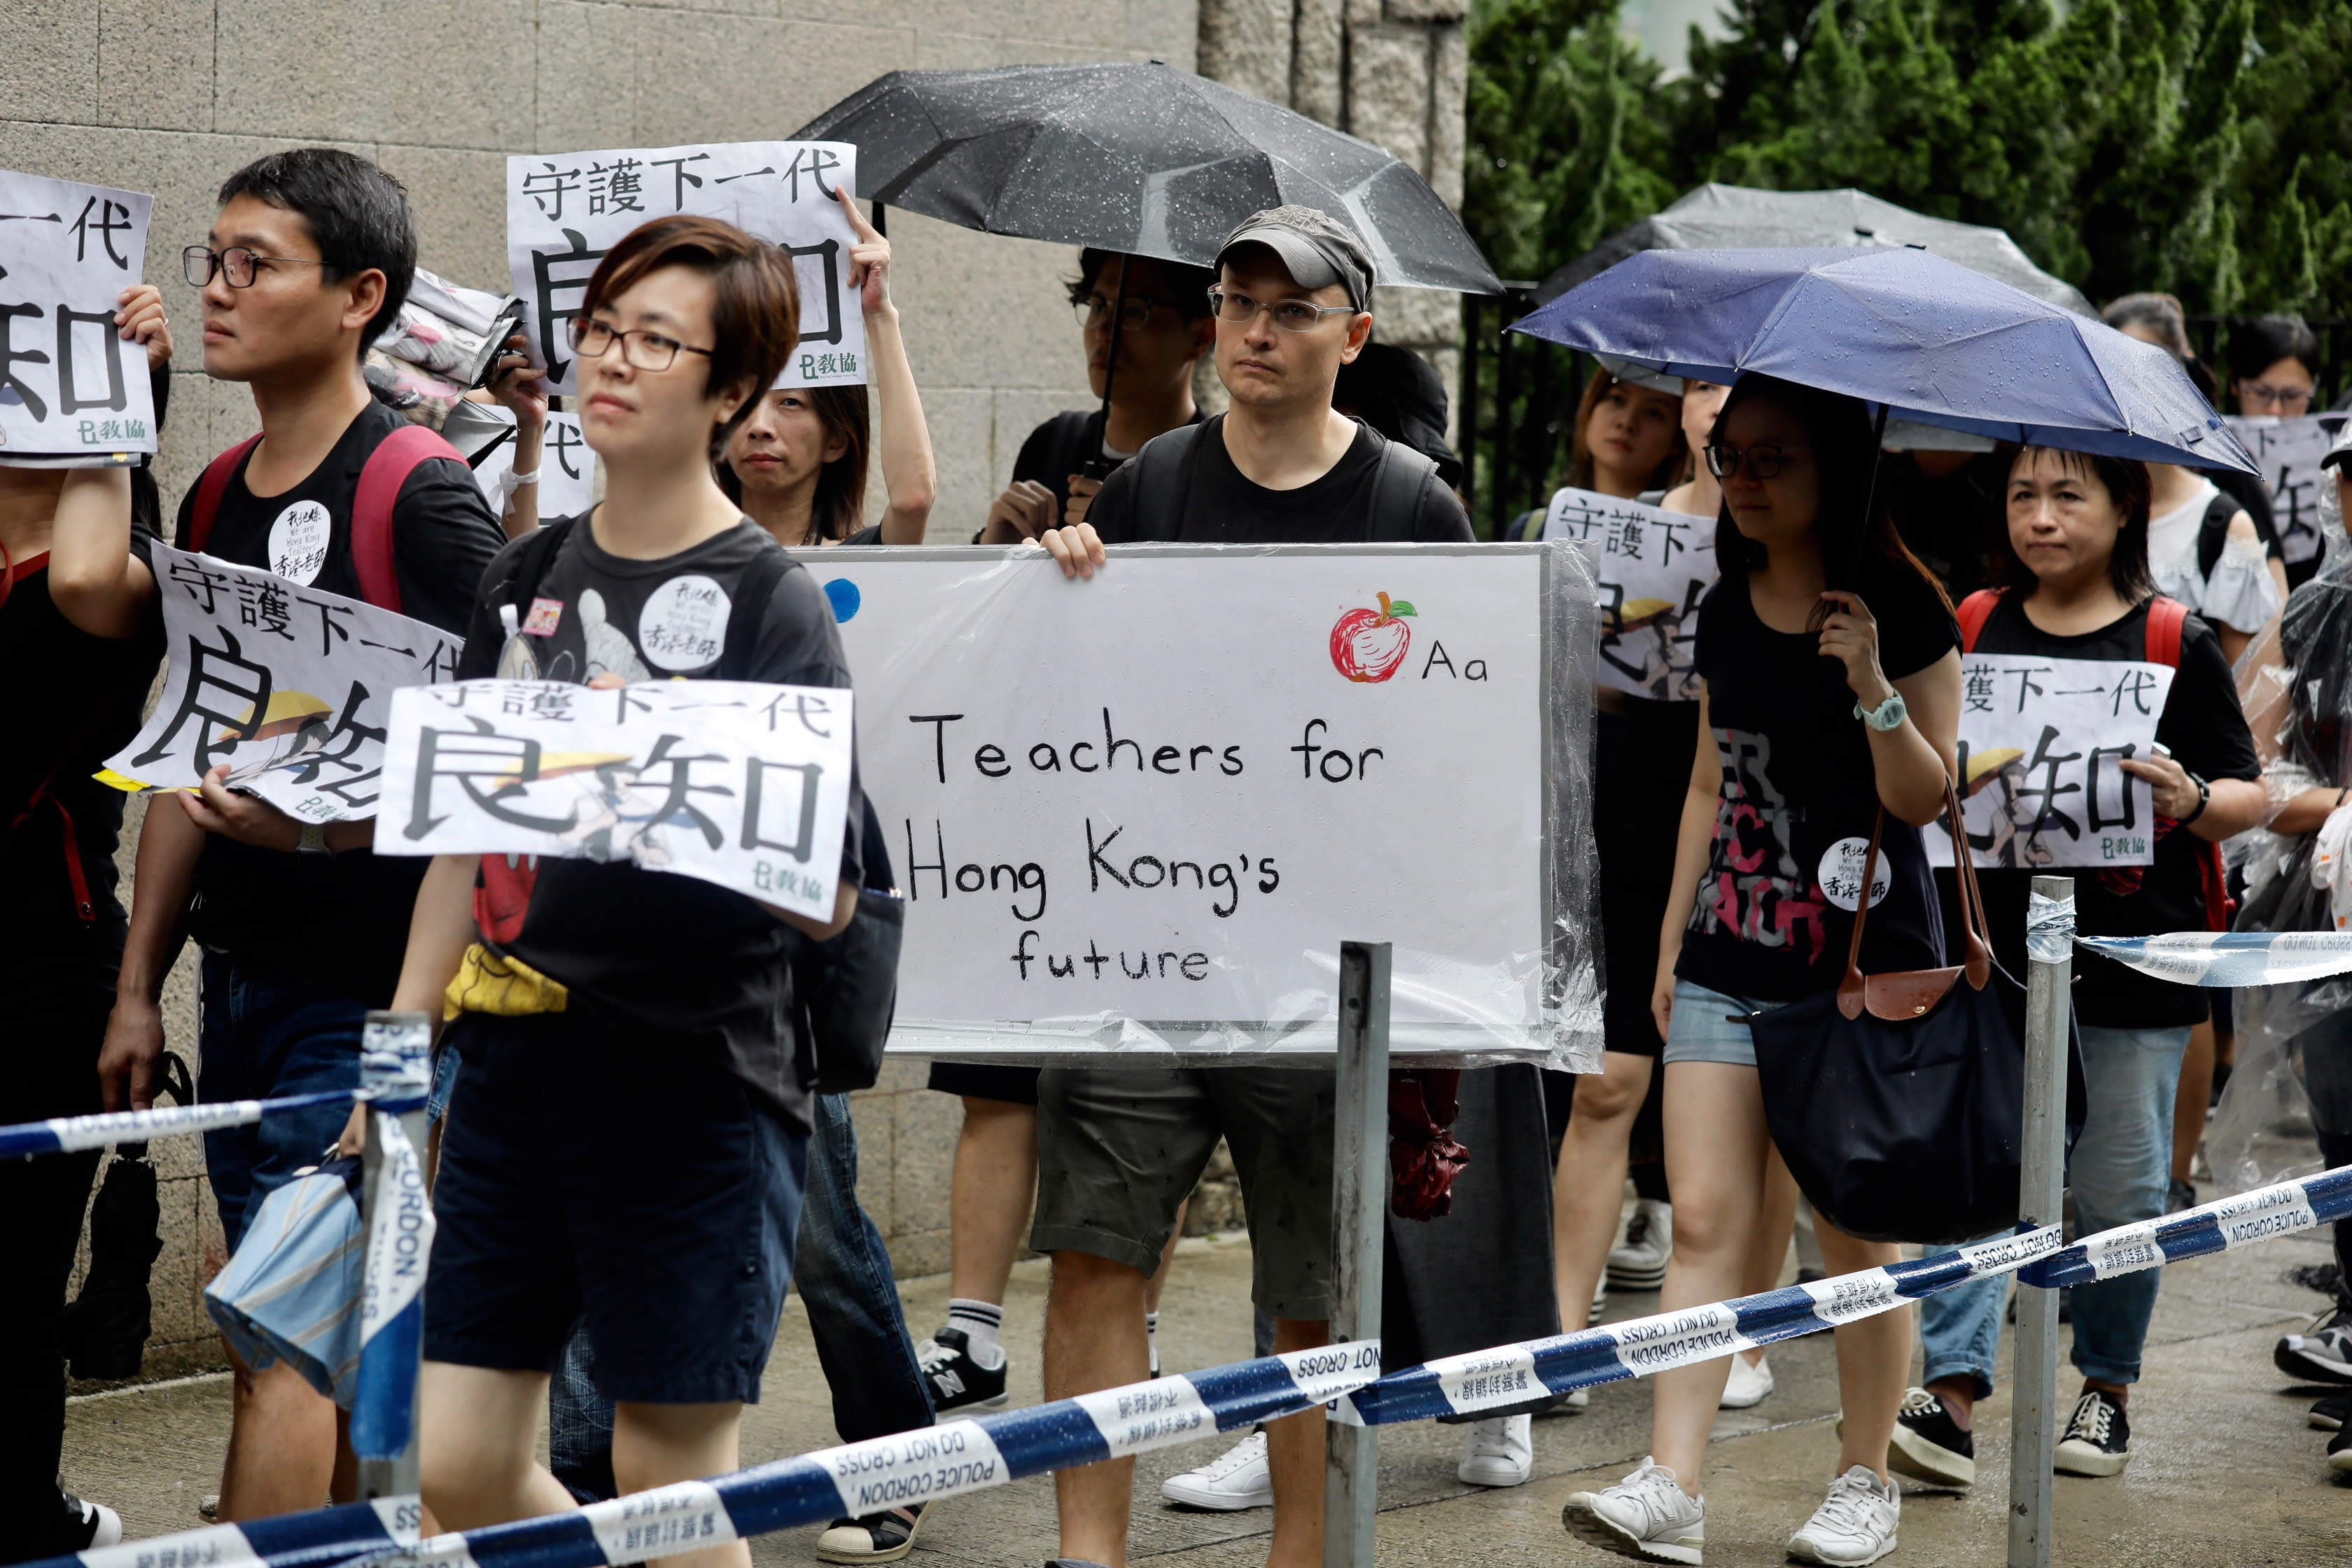 Pro-democracy protesters march organized by teachers in Hong Kong Saturday, Aug. 17, 2019. Members of China's paramilitary People's Armed Police marched and practiced crowd control tactics at a sports complex in Shenzhen across from Hong Kong in what some interpreted as a threat against pro-democracy protesters in the semi-autonomous territory. (AP Photo/Vincent Yu)